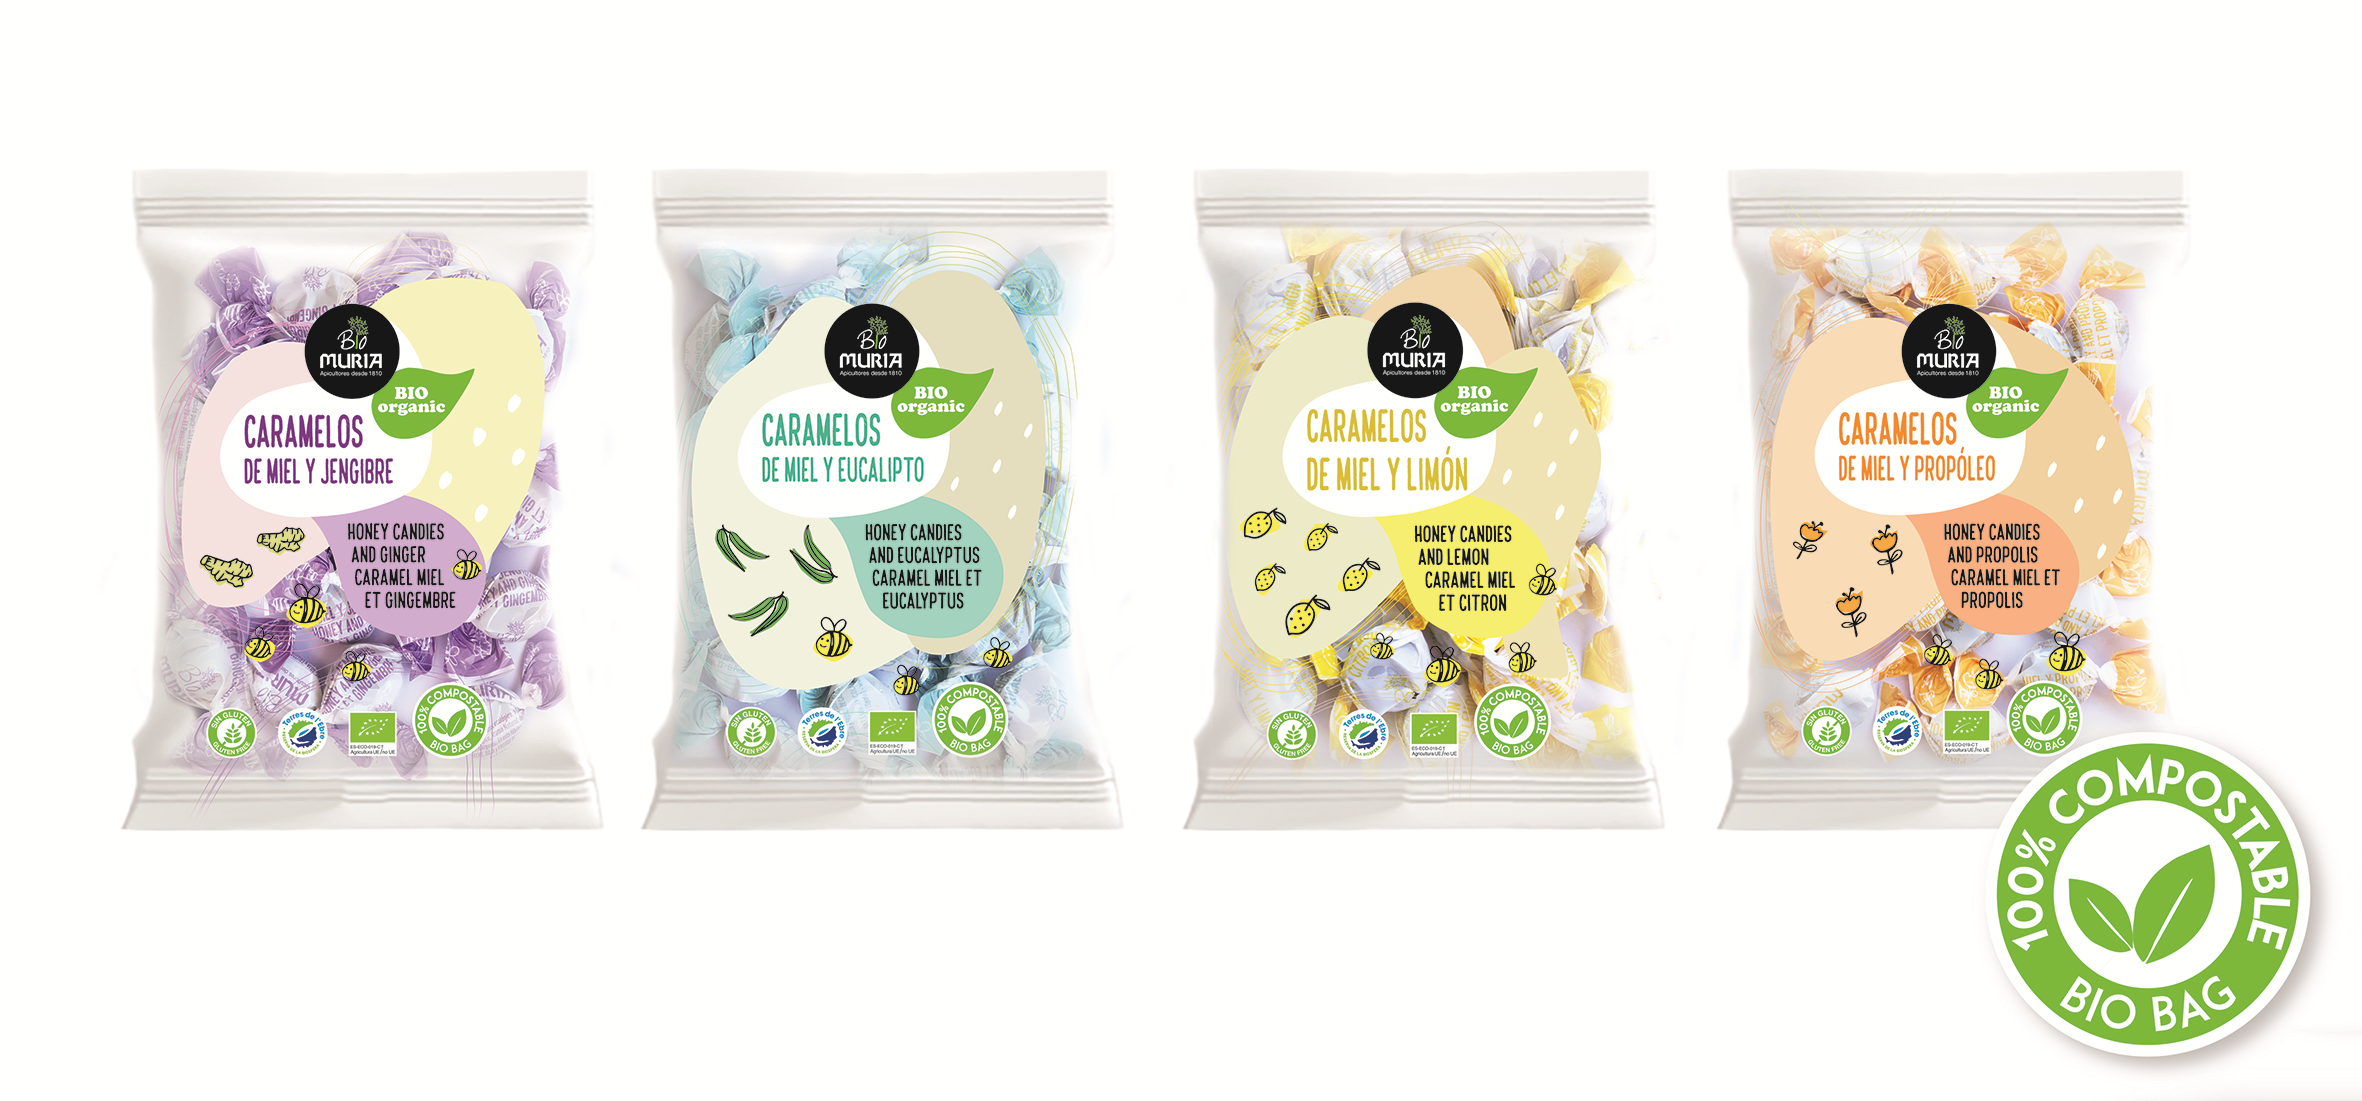 Muria BIO launches the first organic honey candies in Europe with 100% compostable packaging